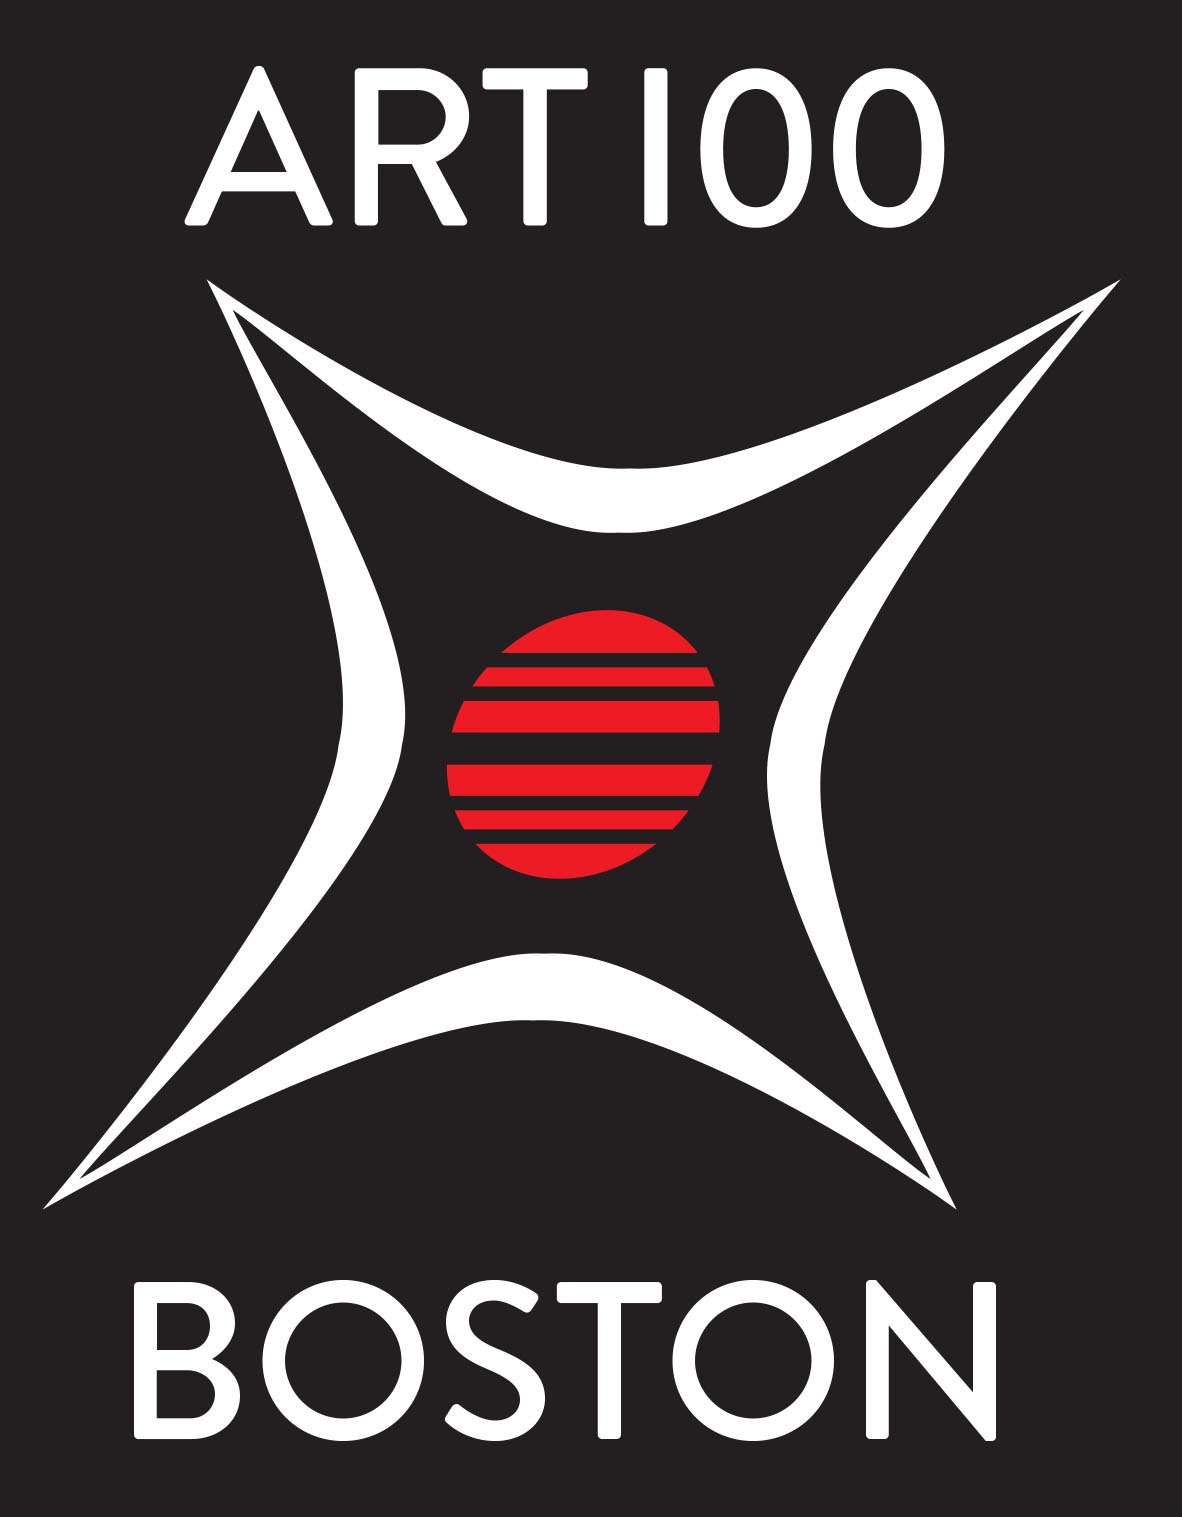 ART 100 Boston logo